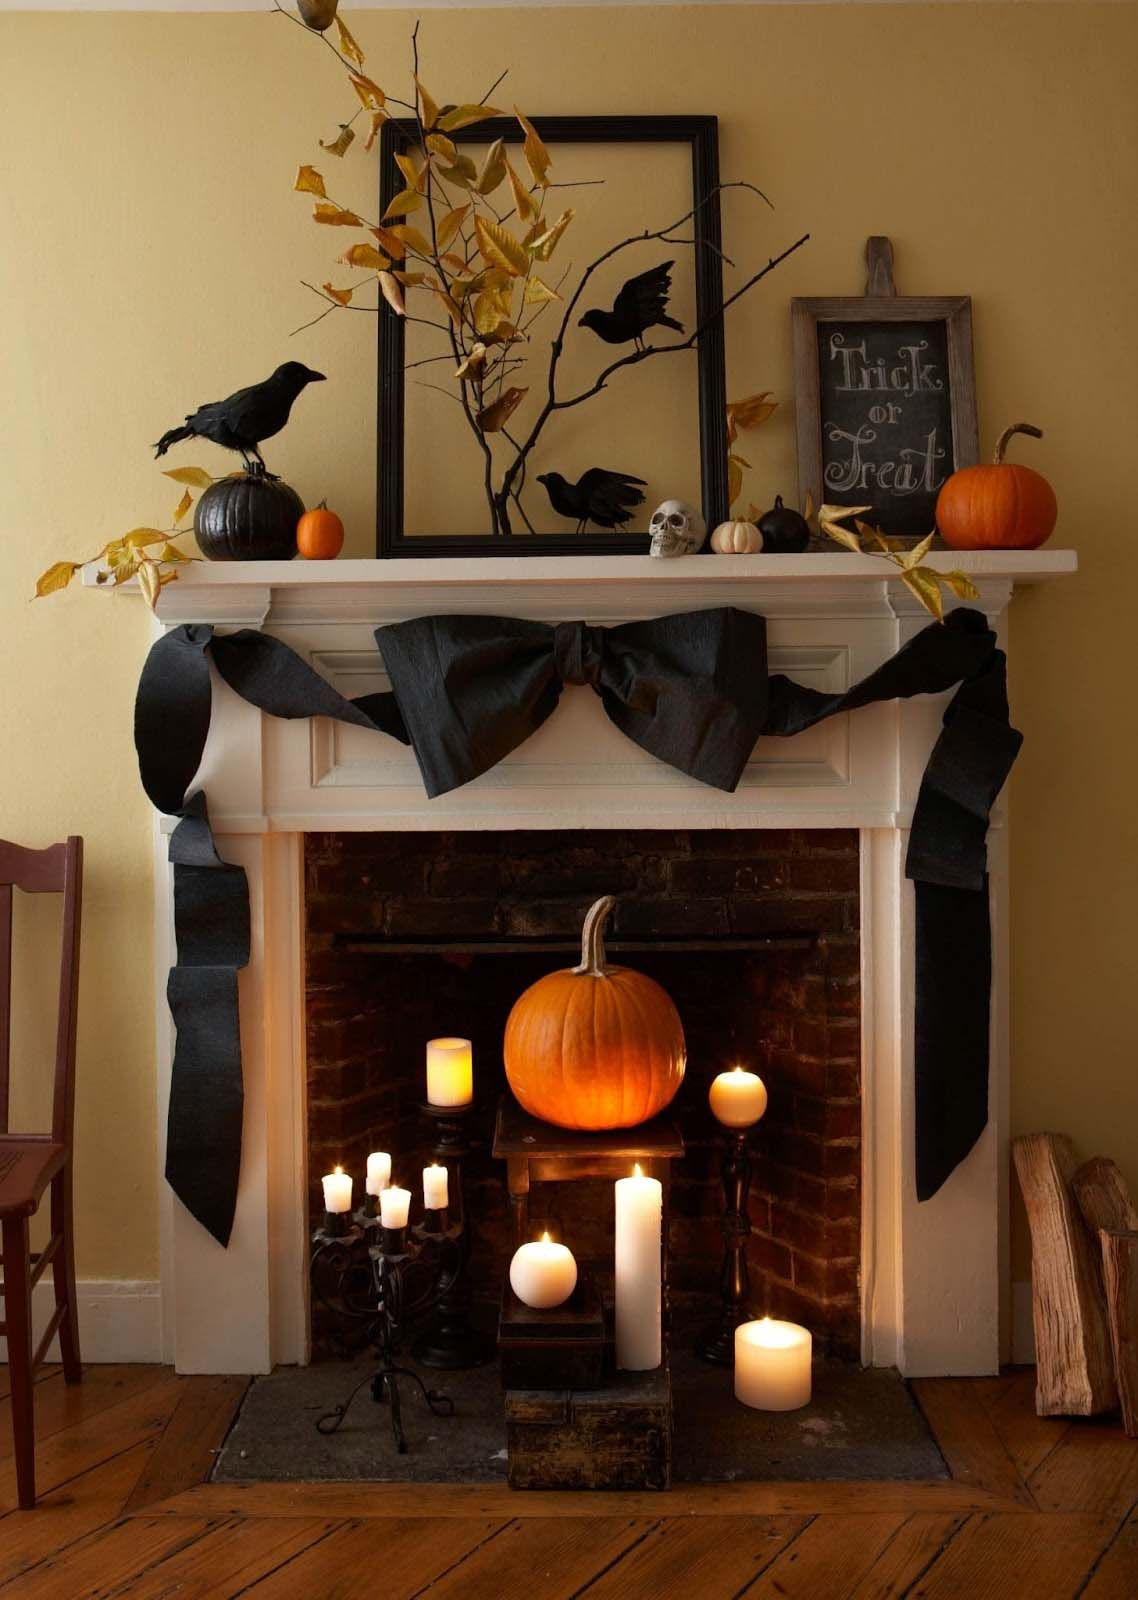 spooktacular halloween mantel decorating ideas  spooky  -  spooktacular halloween mantel decorating ideas